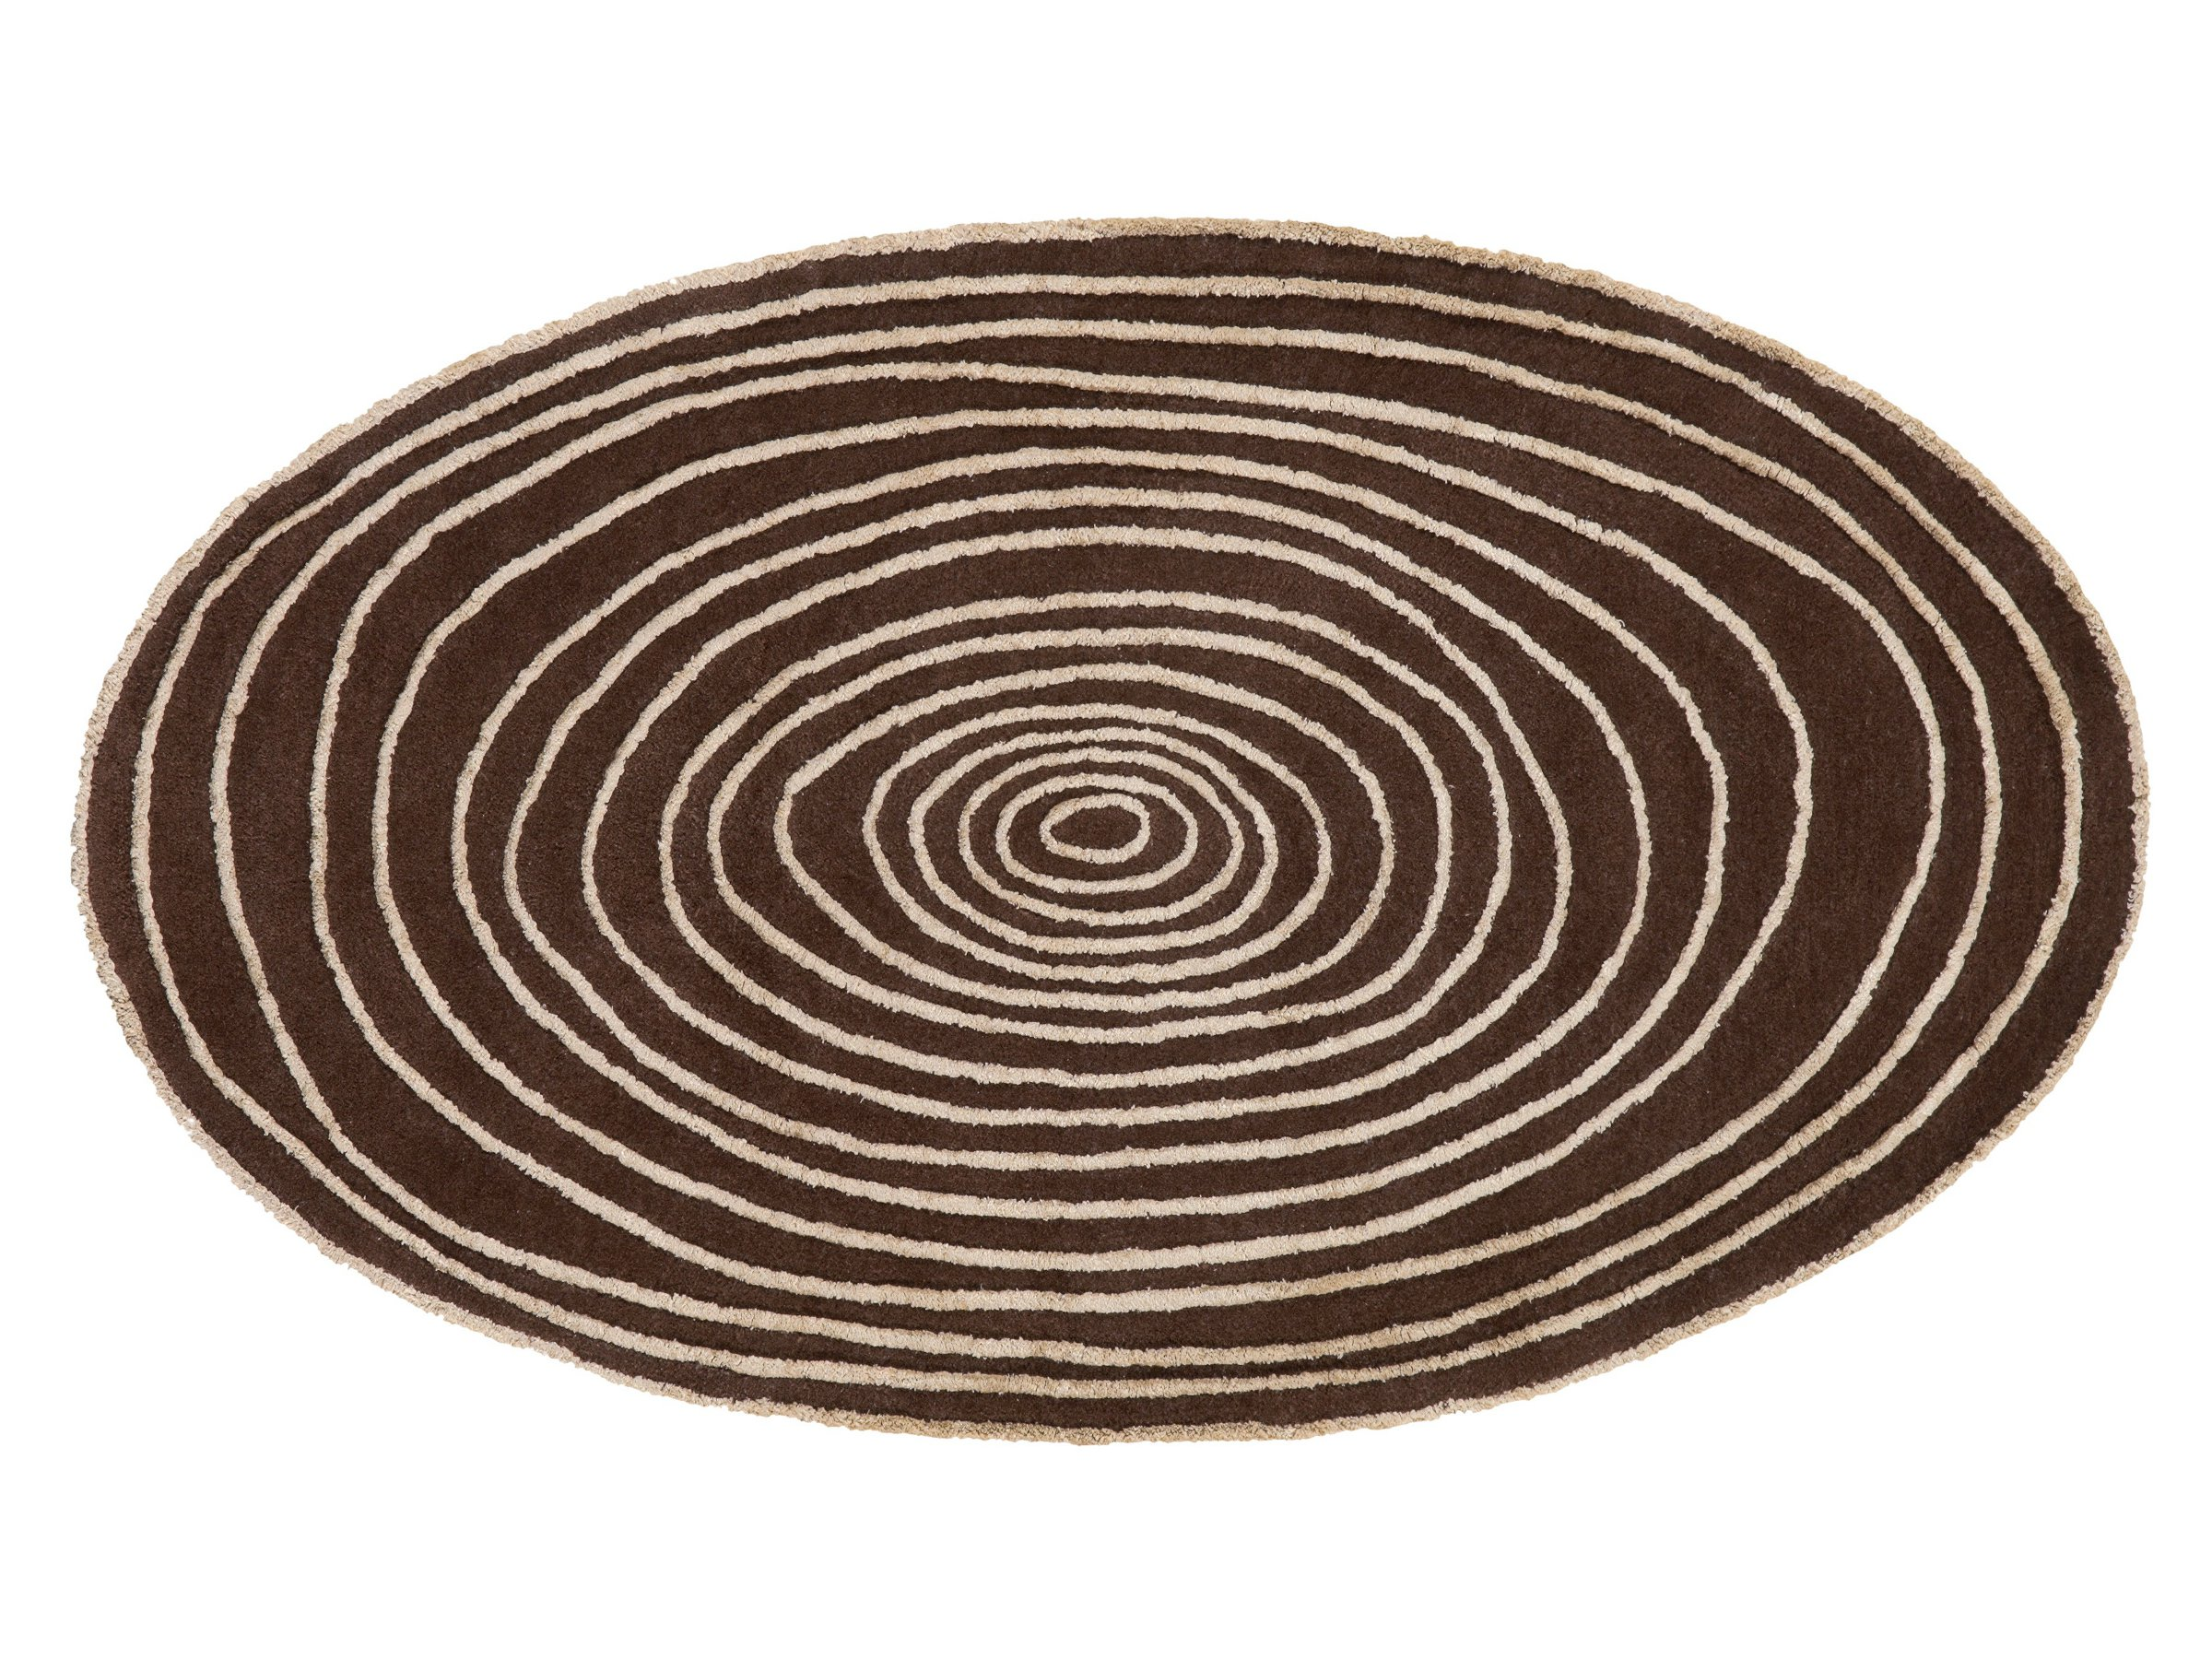 Round carpets carpet vidalondon for Round carpets and rugs